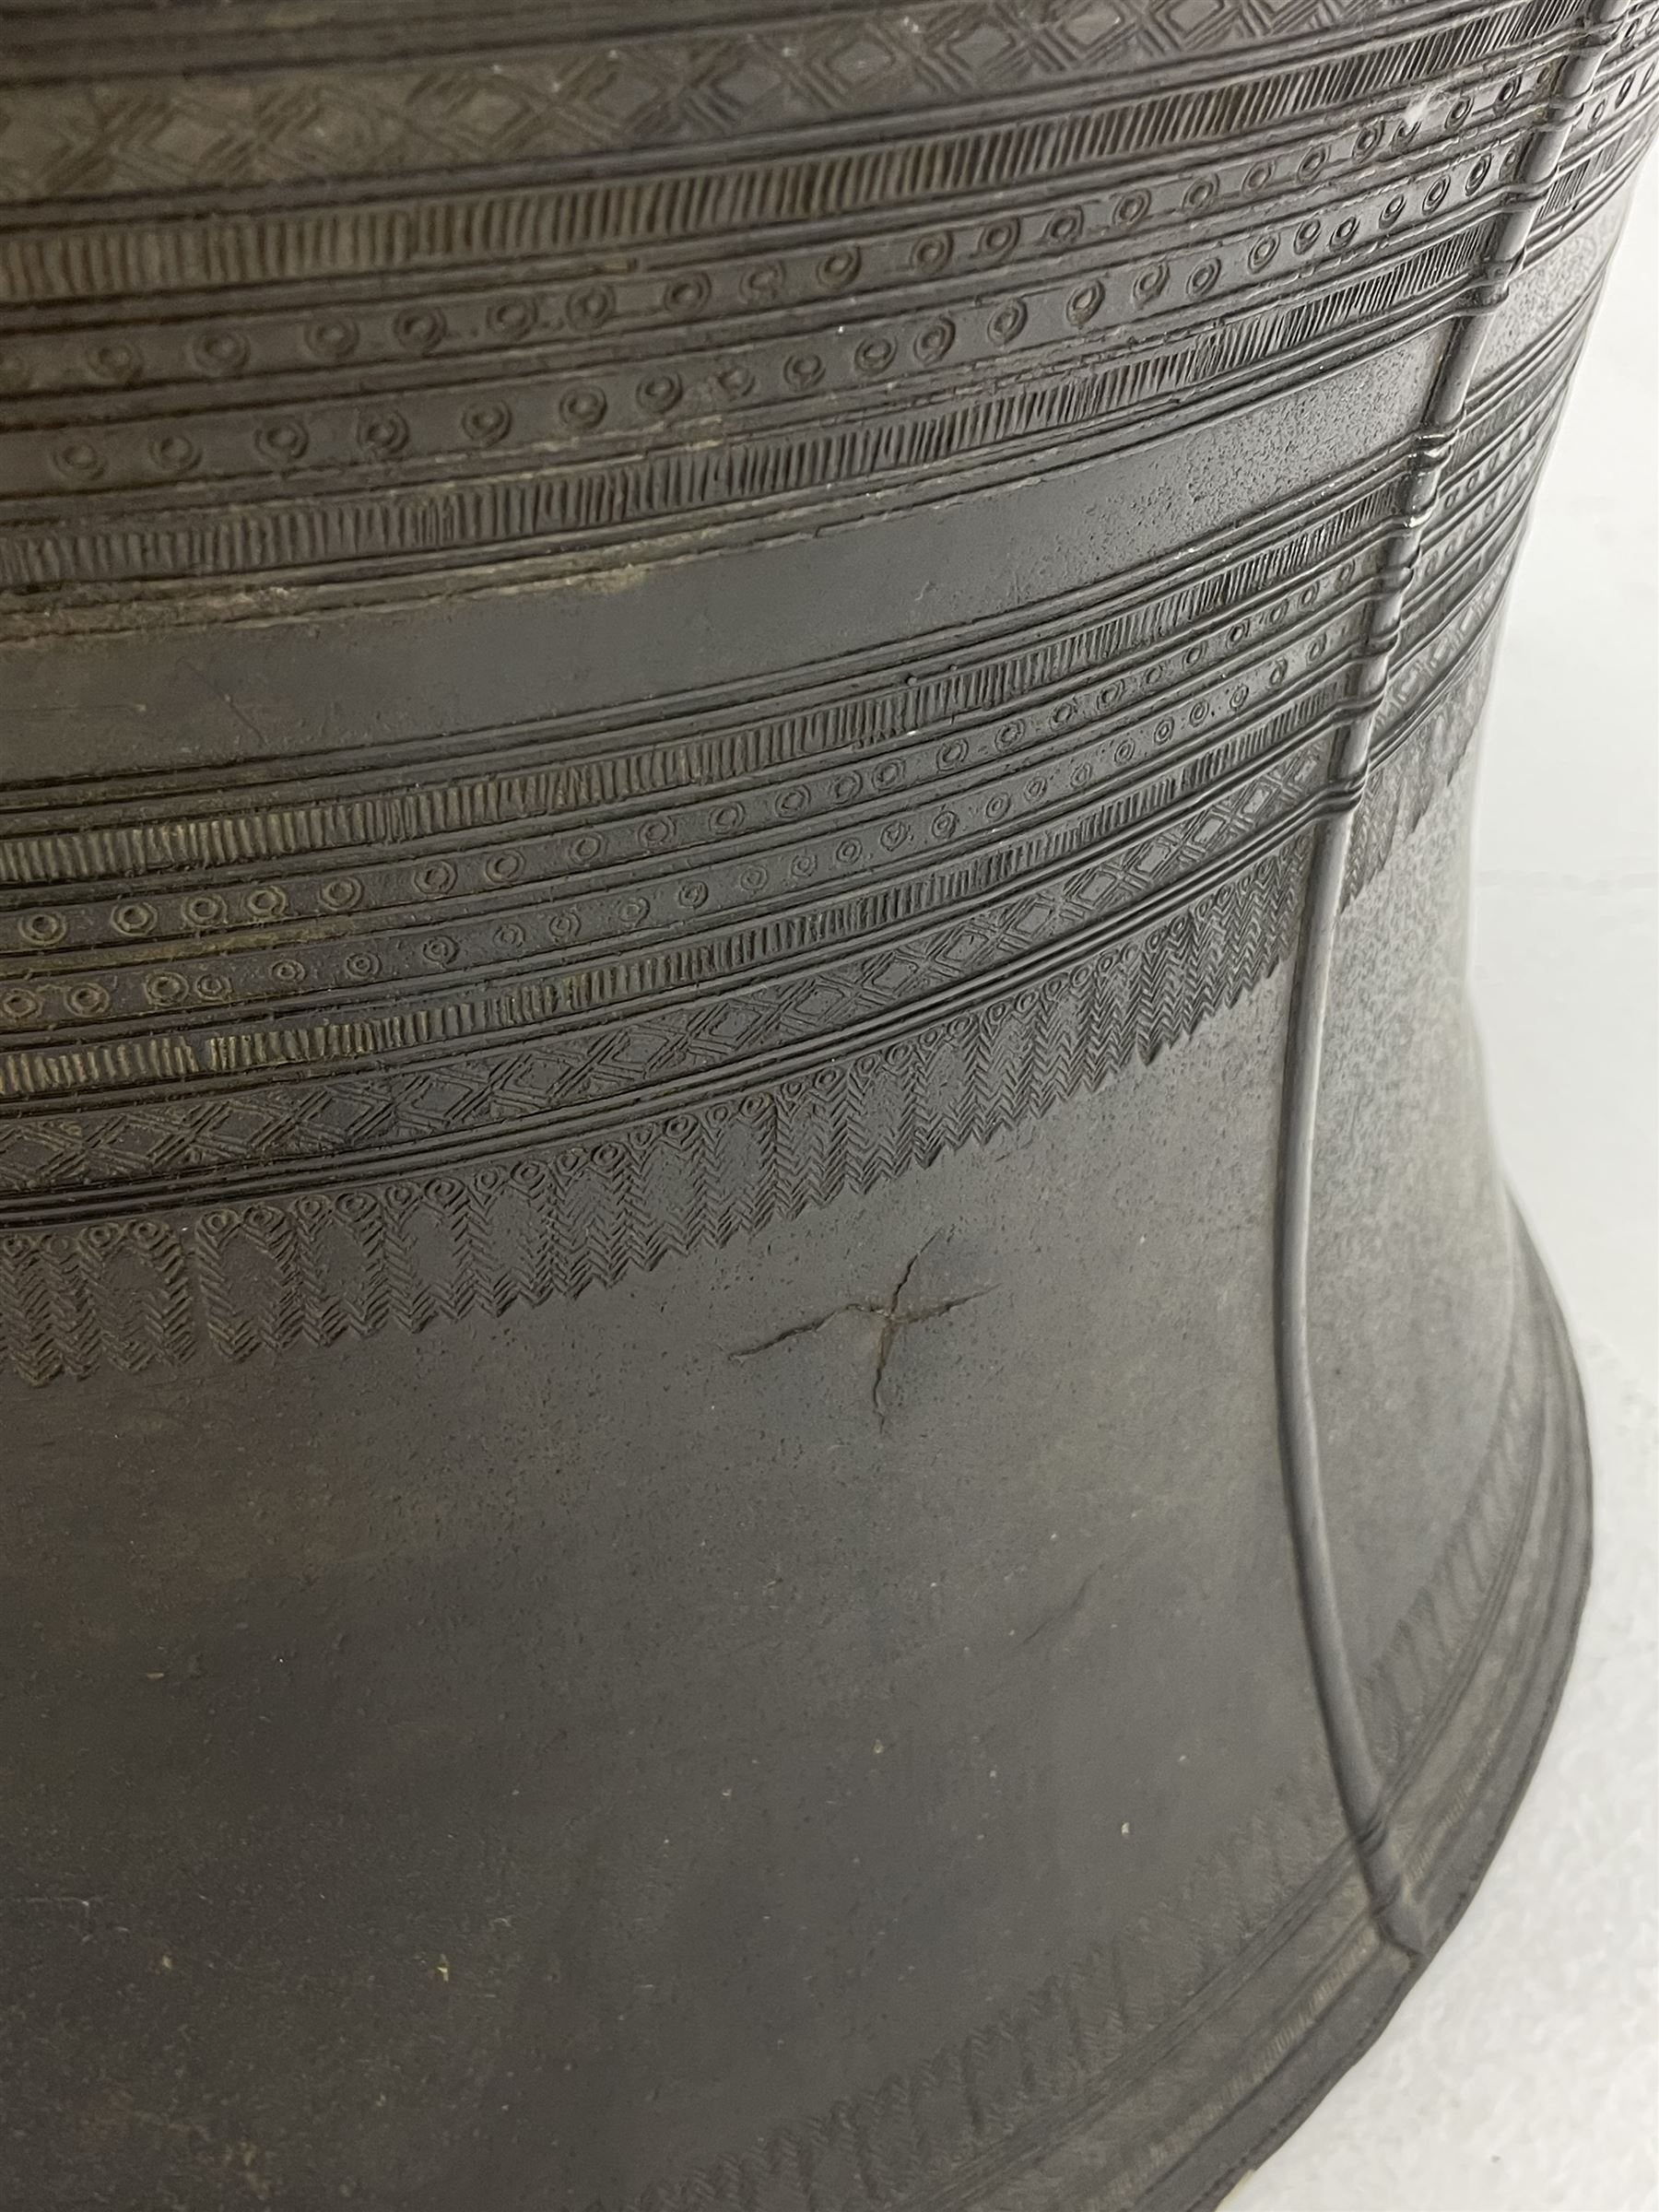 Dong Son style Southeast Asian bronze rain drum - Image 6 of 8